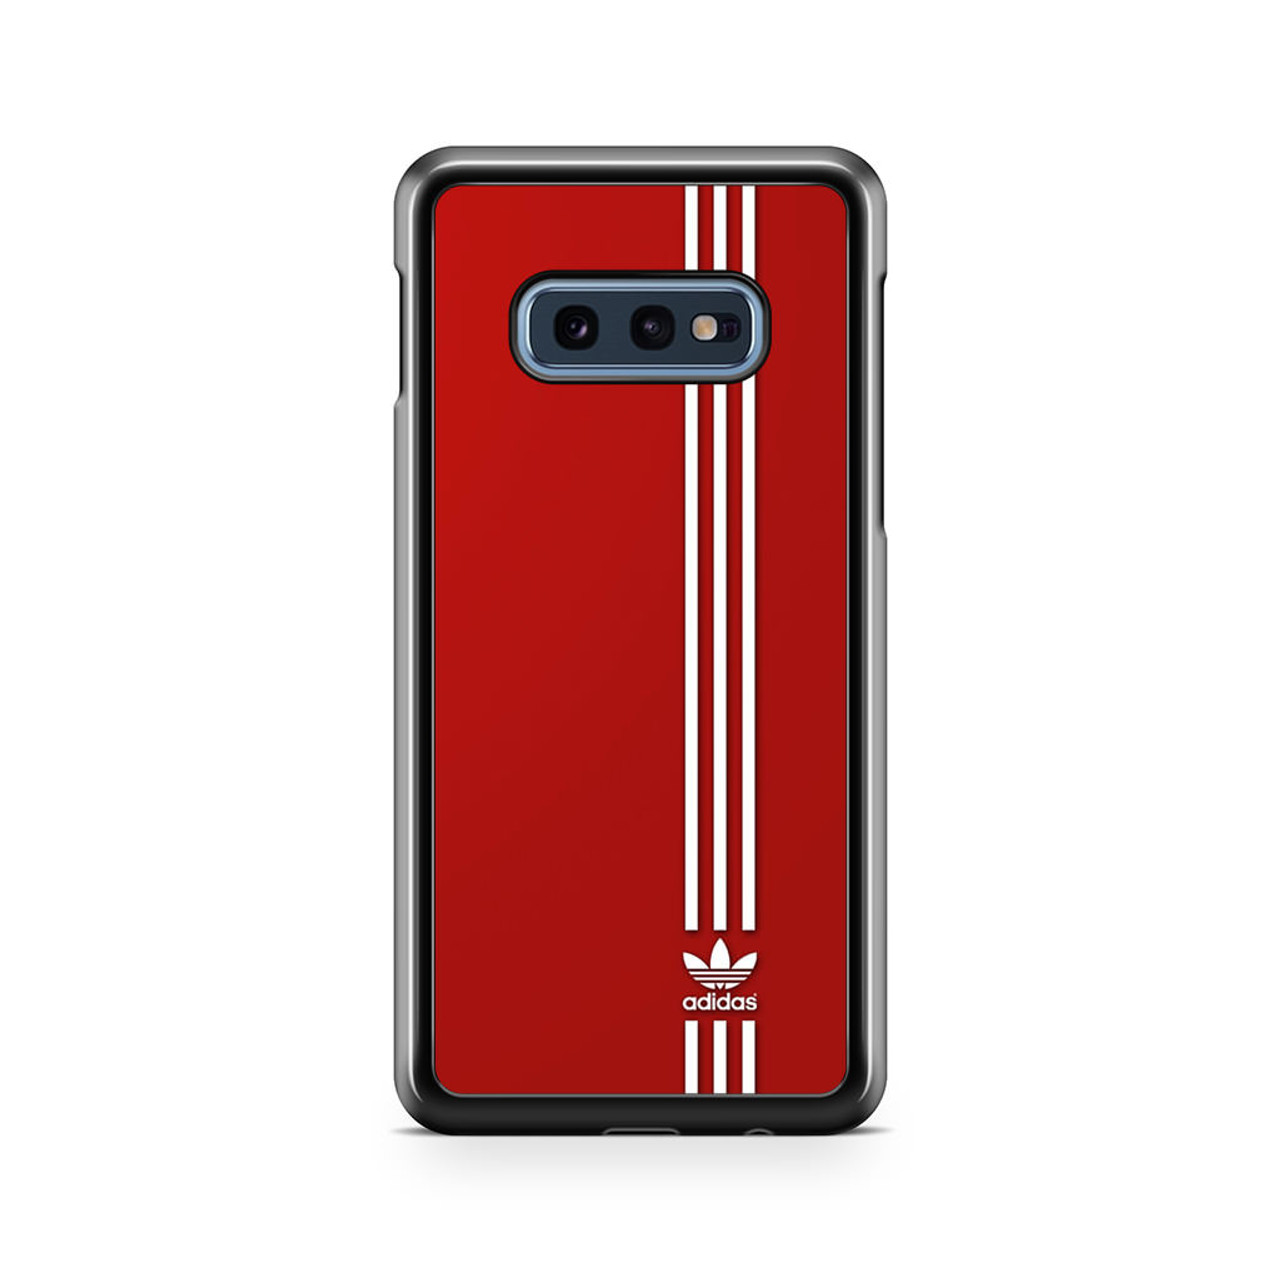 check out top brands another chance Brand Adidas Red White Sport Samsung Galaxy S10e Case